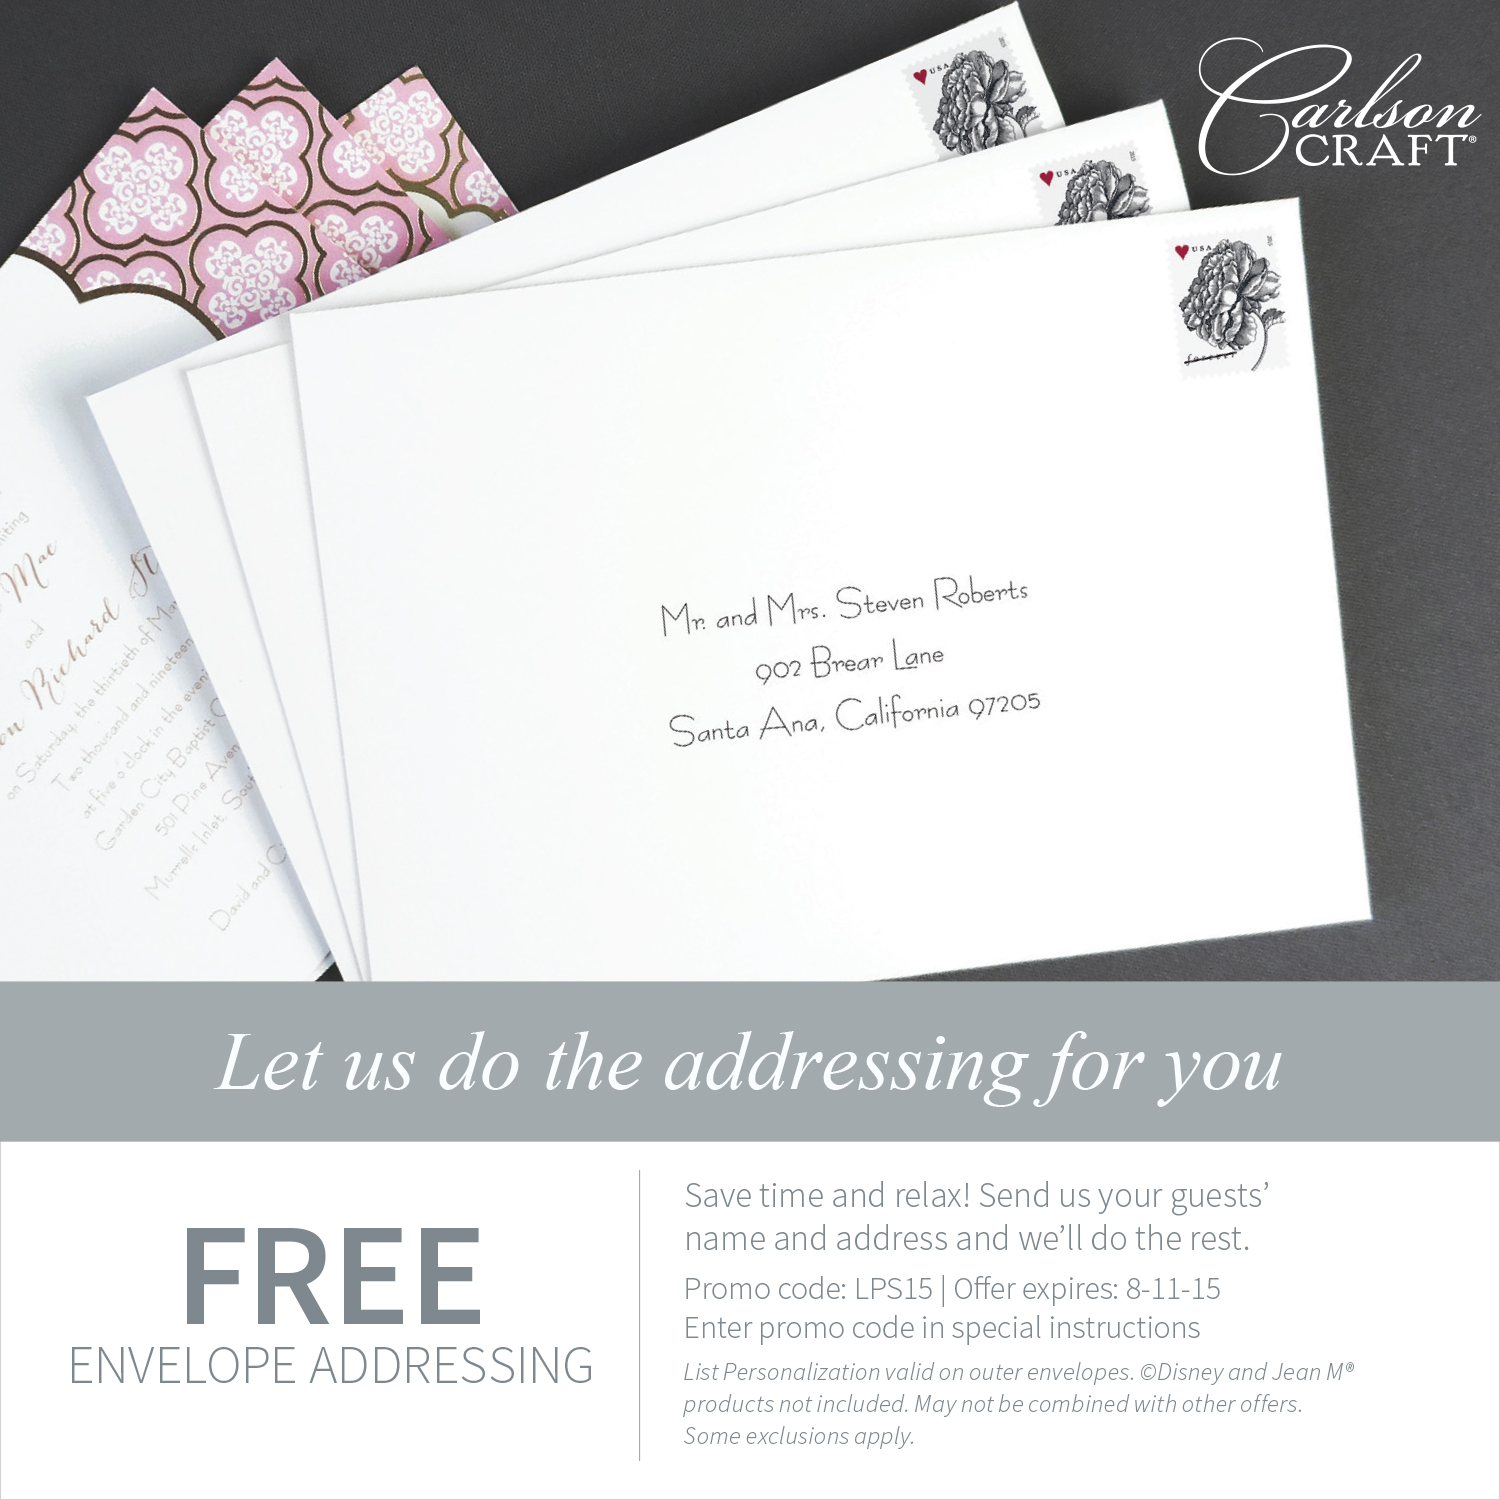 Free Envelope Addressing